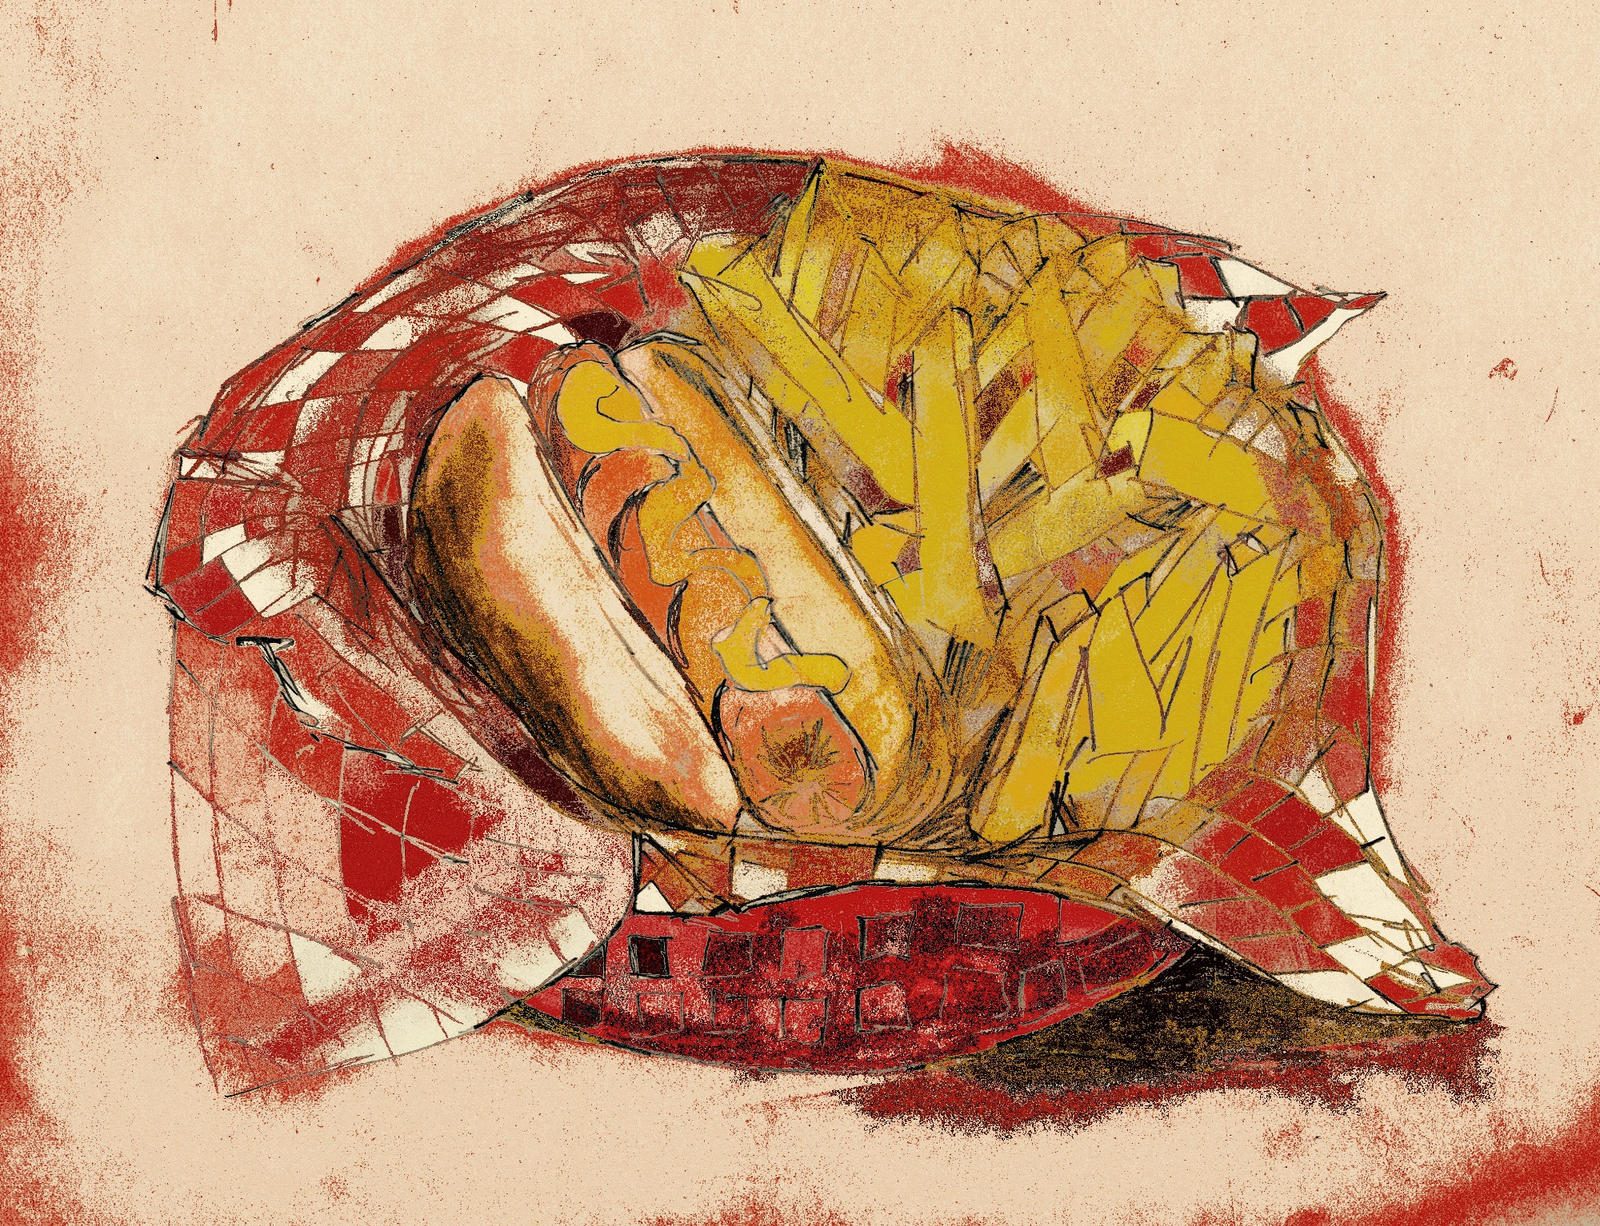 Hot dog and french fries by KateHodges